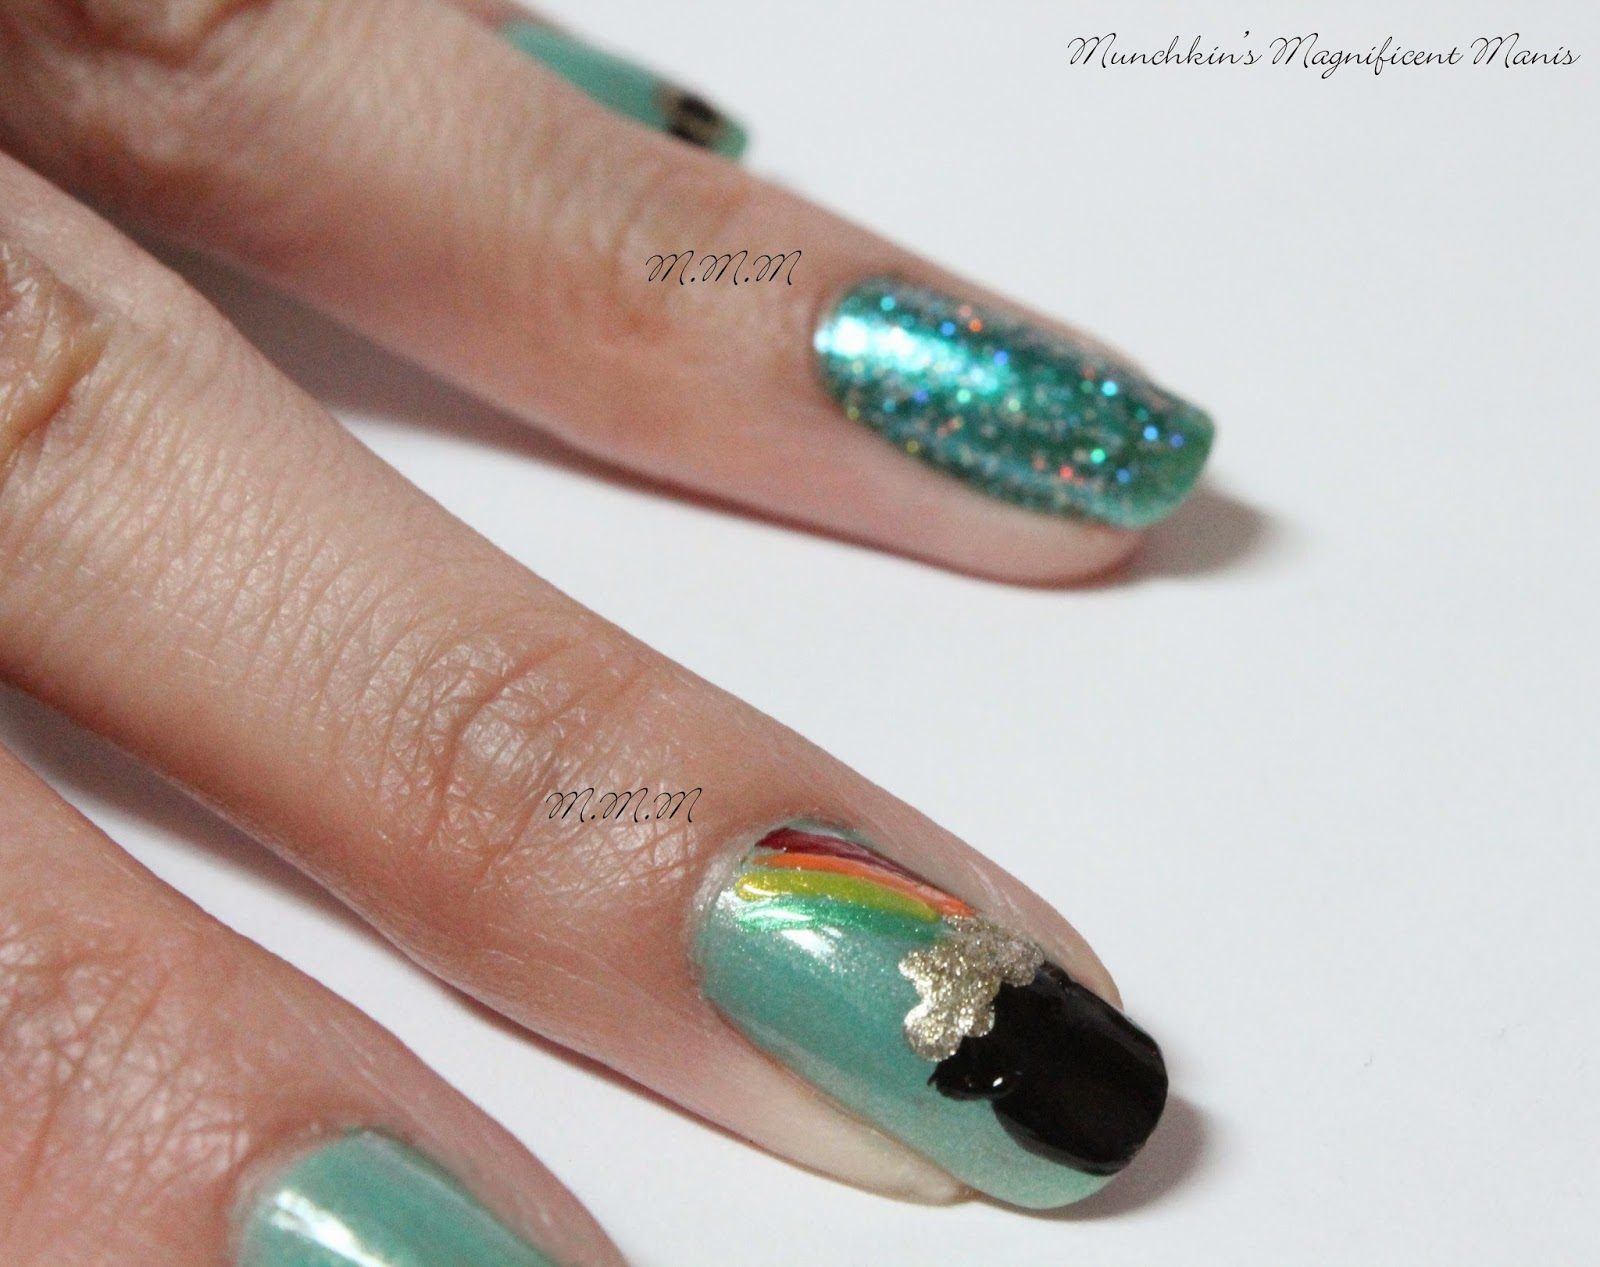 Munchkins magnificent manis dont pinch me st patricks day design we finish the pot of gold now the finishing touch the rainbow take your thin nail art brush dipped in red polish first then make a thin line that curves prinsesfo Choice Image